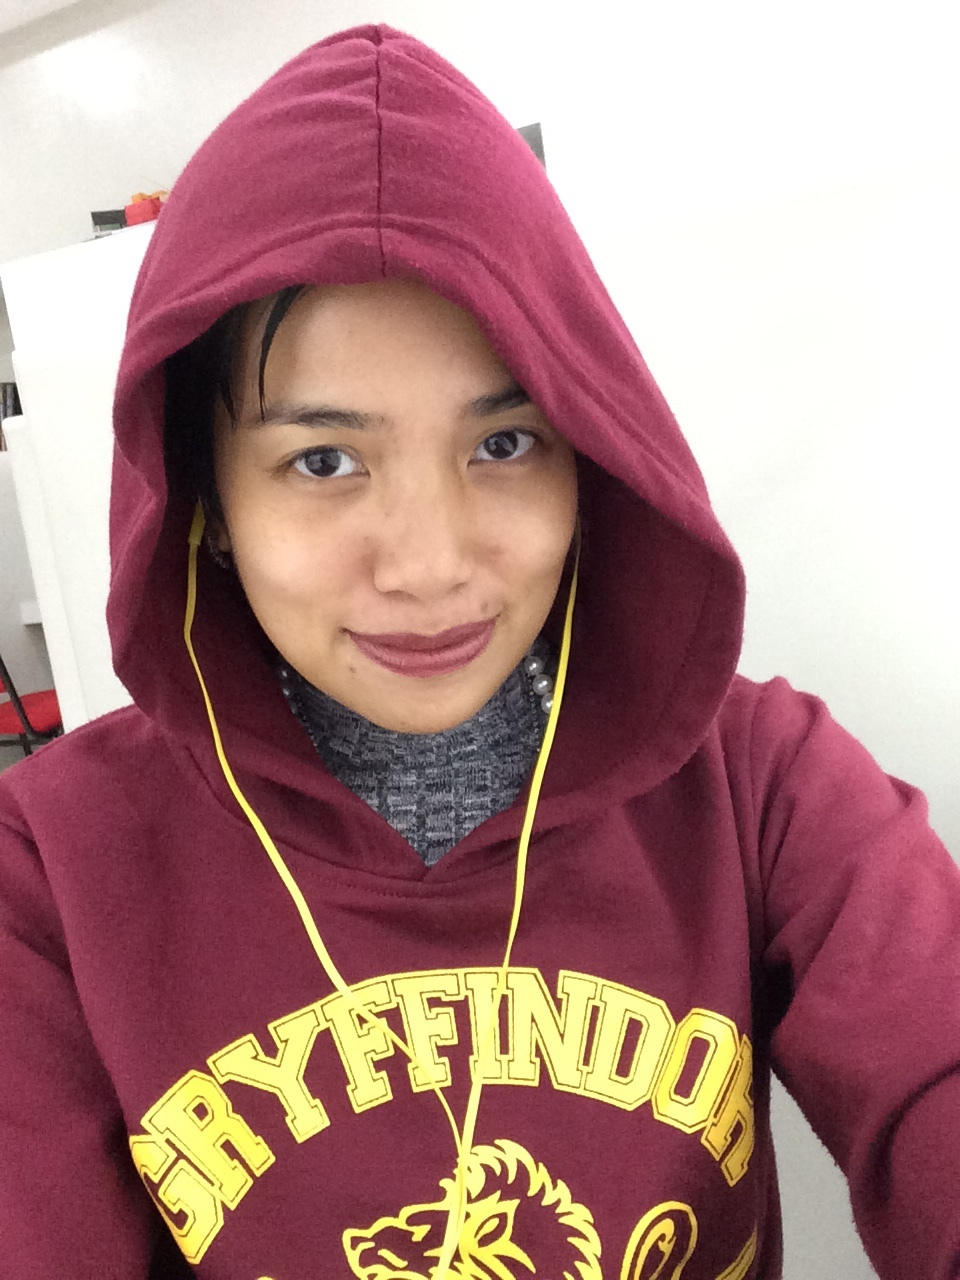 #nofilter Gryffindor in my cold office!